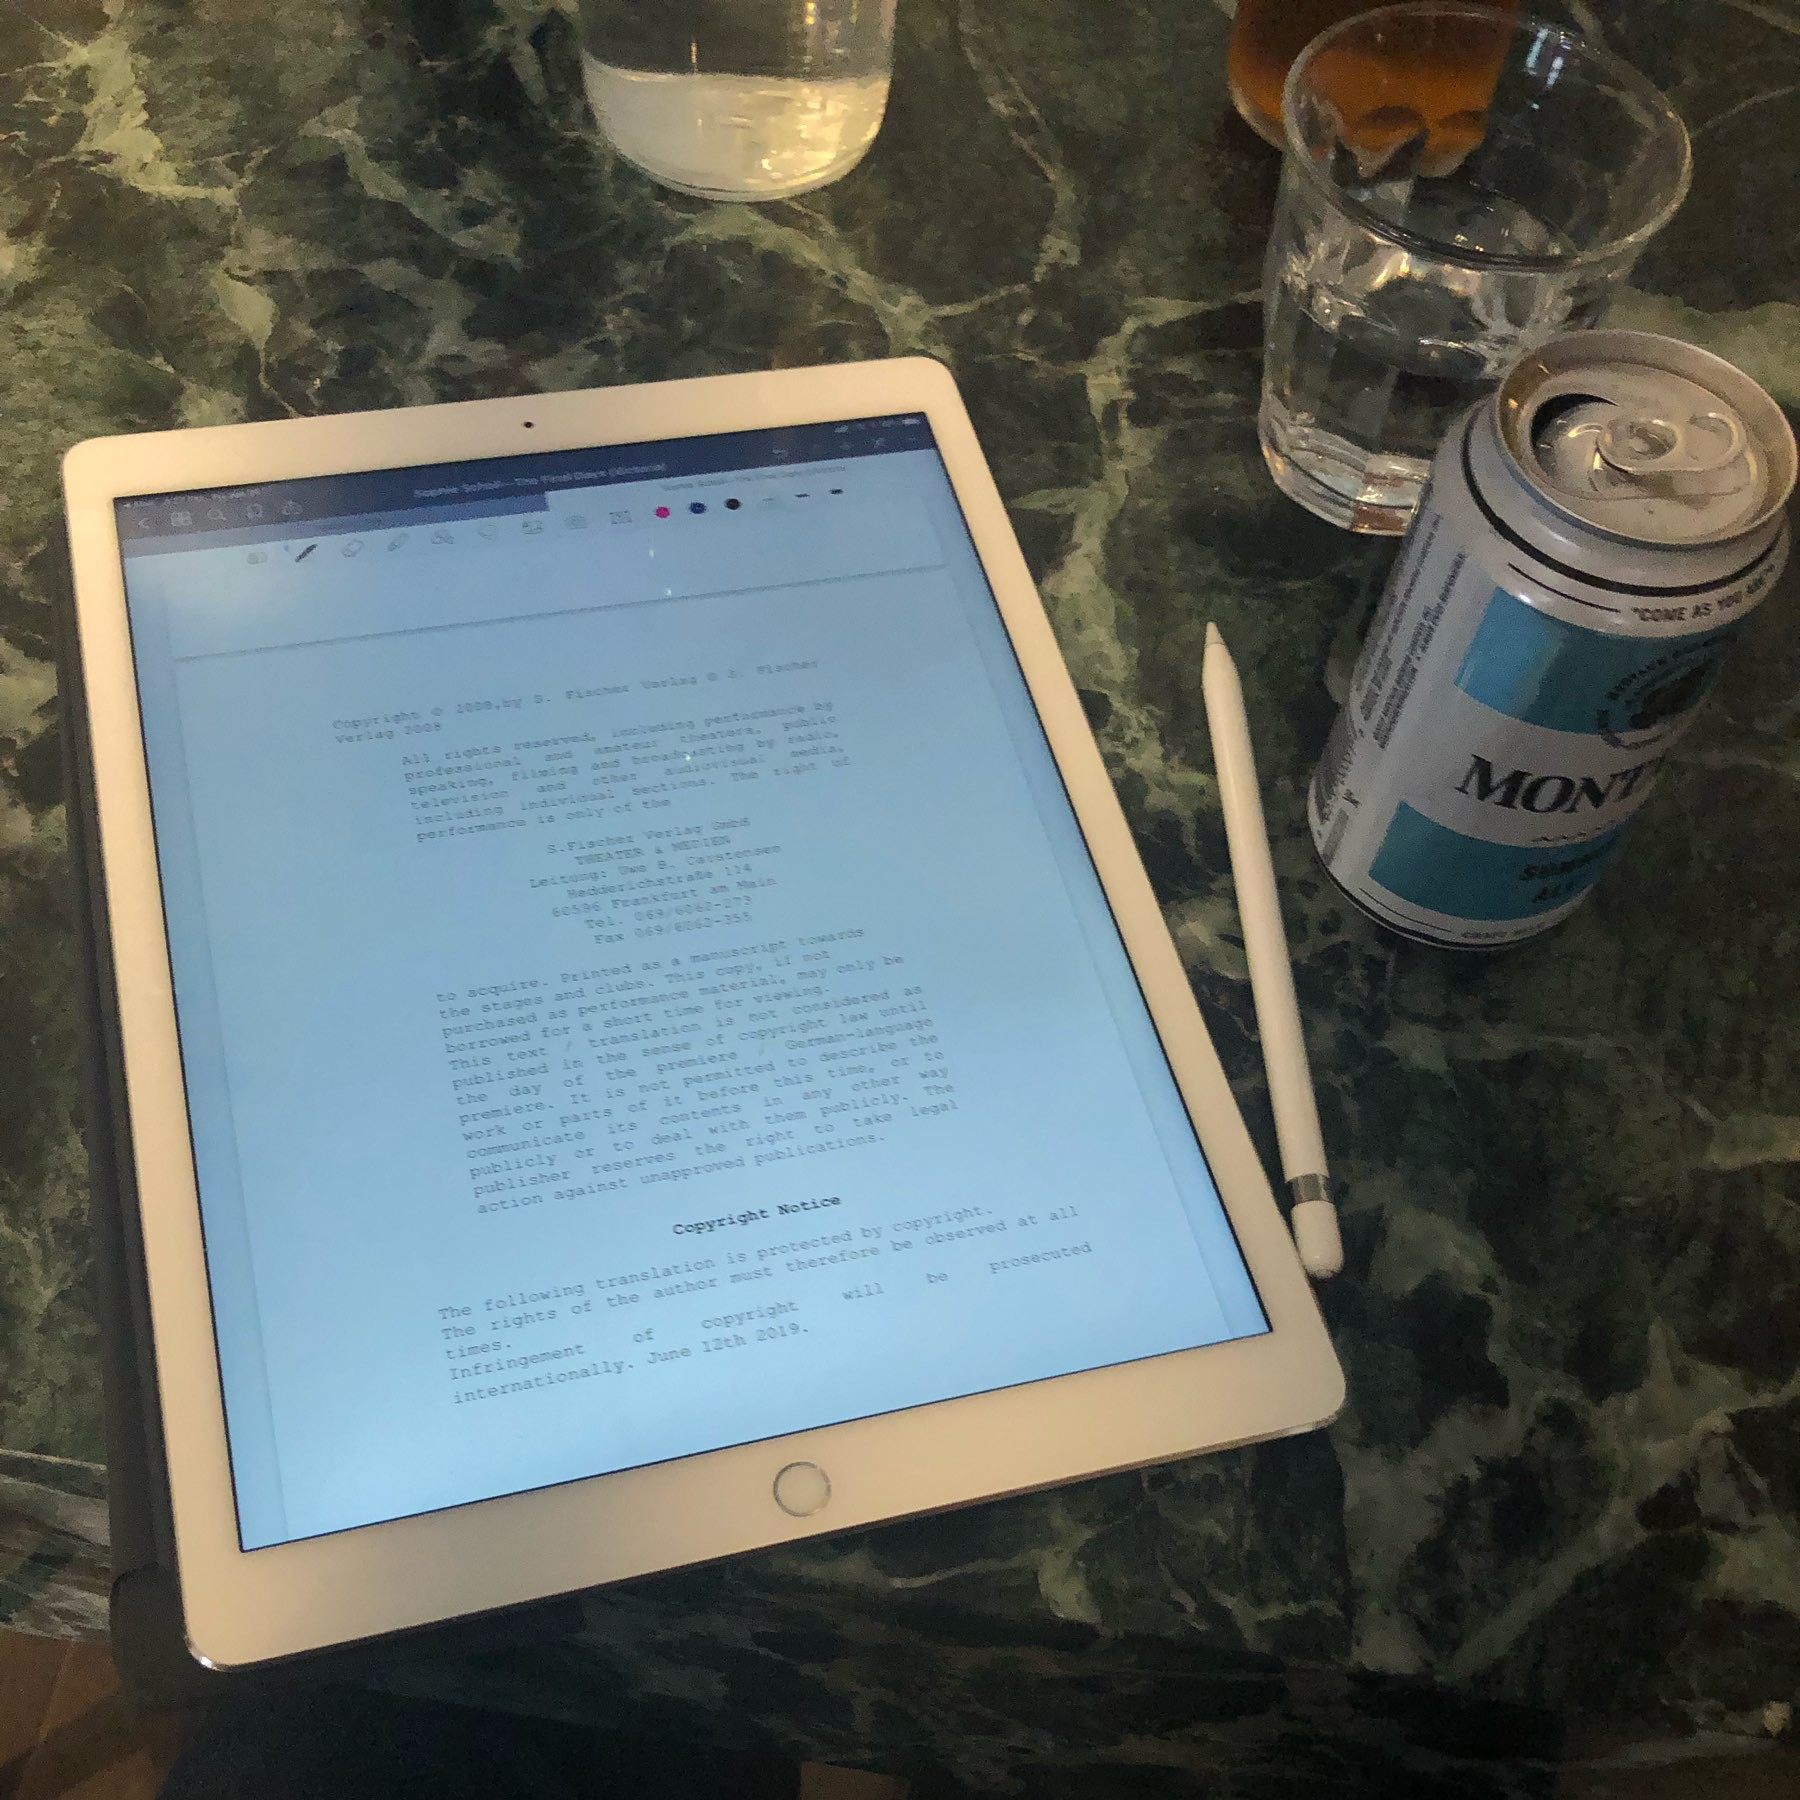 iPad with play script next to beer can